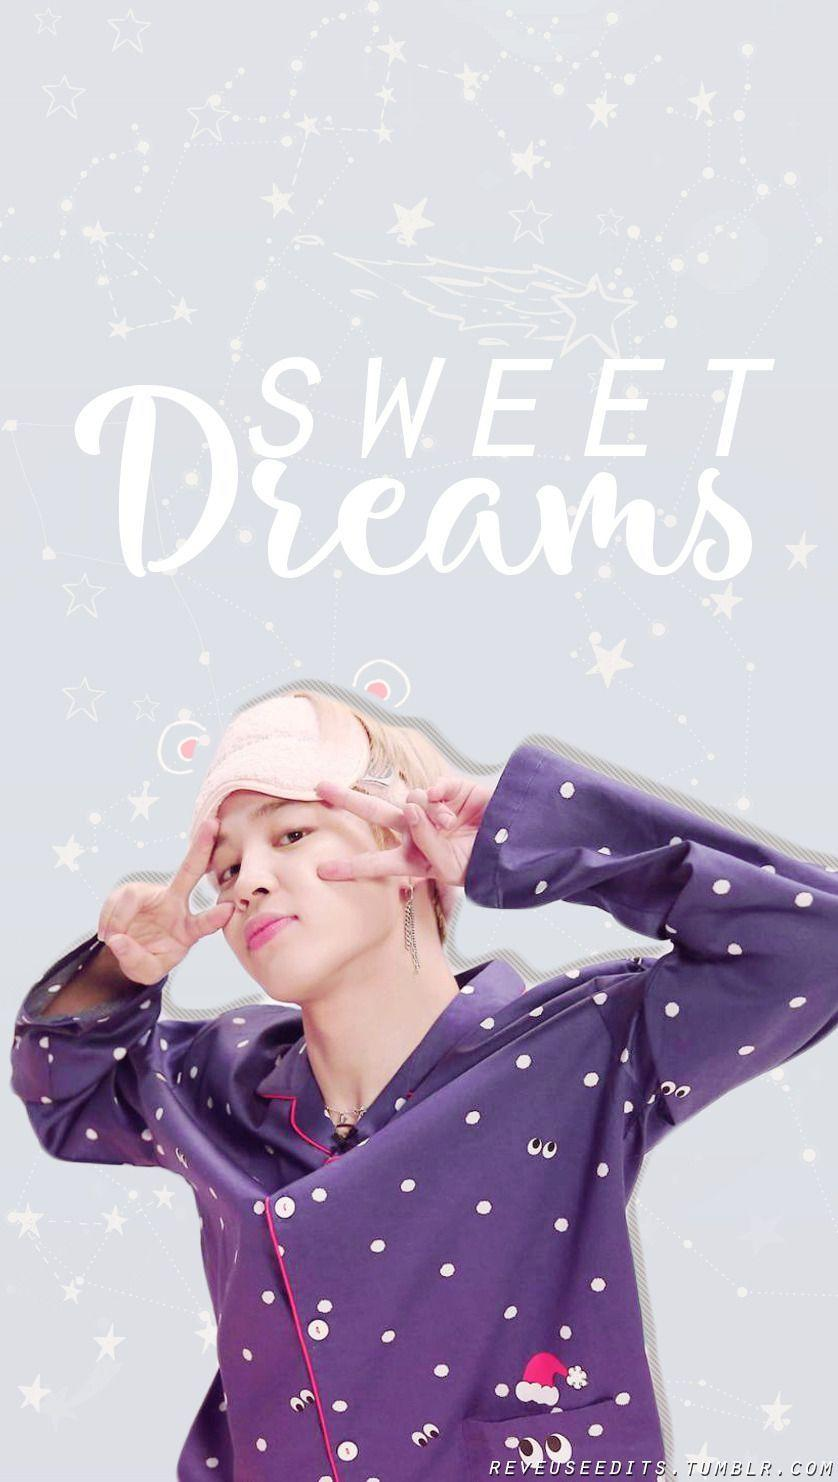 Jimin Iphone Lockscreen Wallpapers Wallpaper Cave